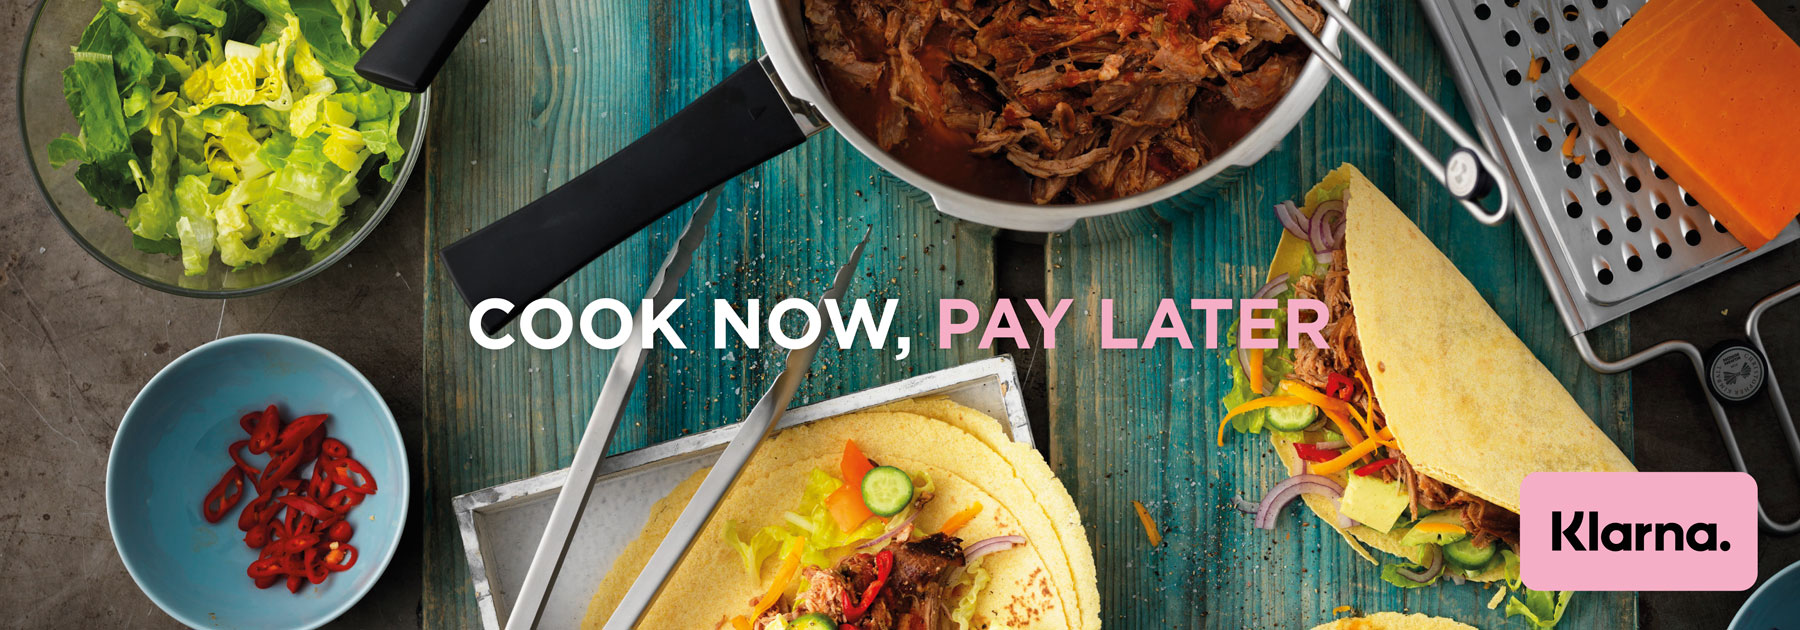 Klarna, Sale, Cook Now, Pay Later